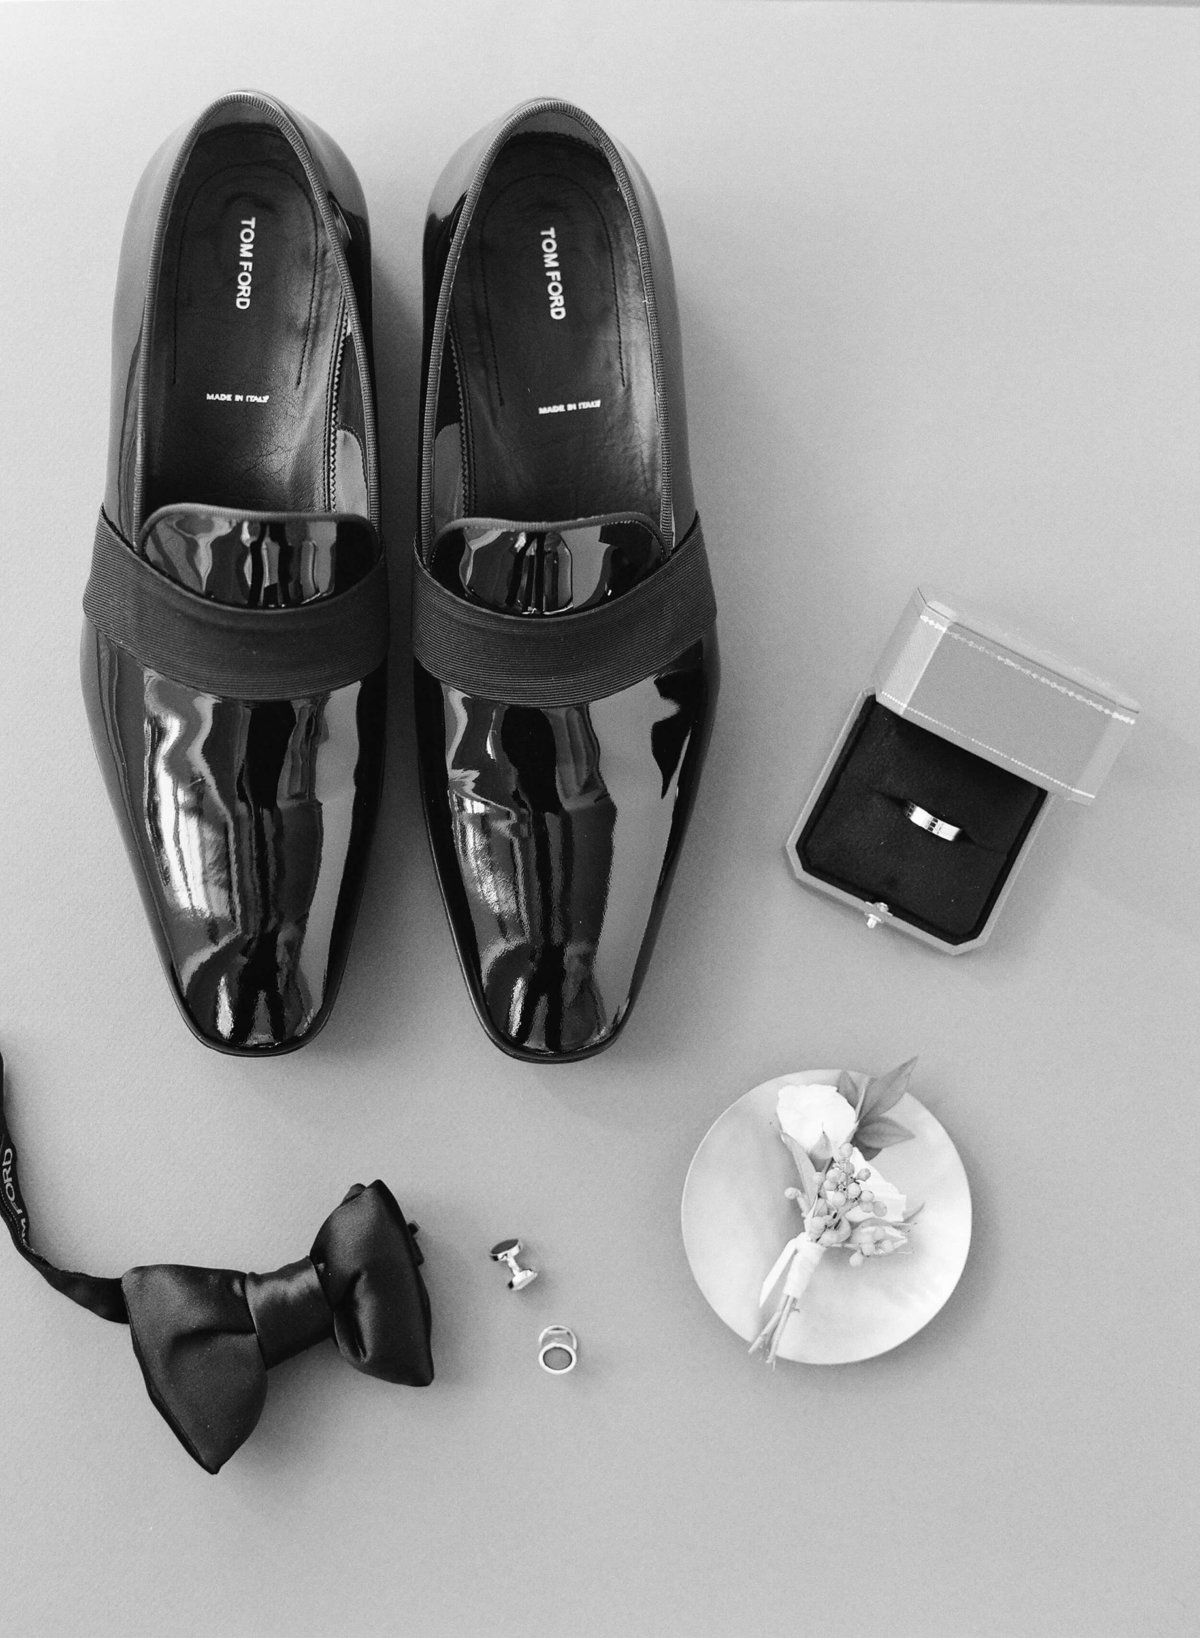 31-KTMerry-weddings-Tom-Form-grooms-shoes